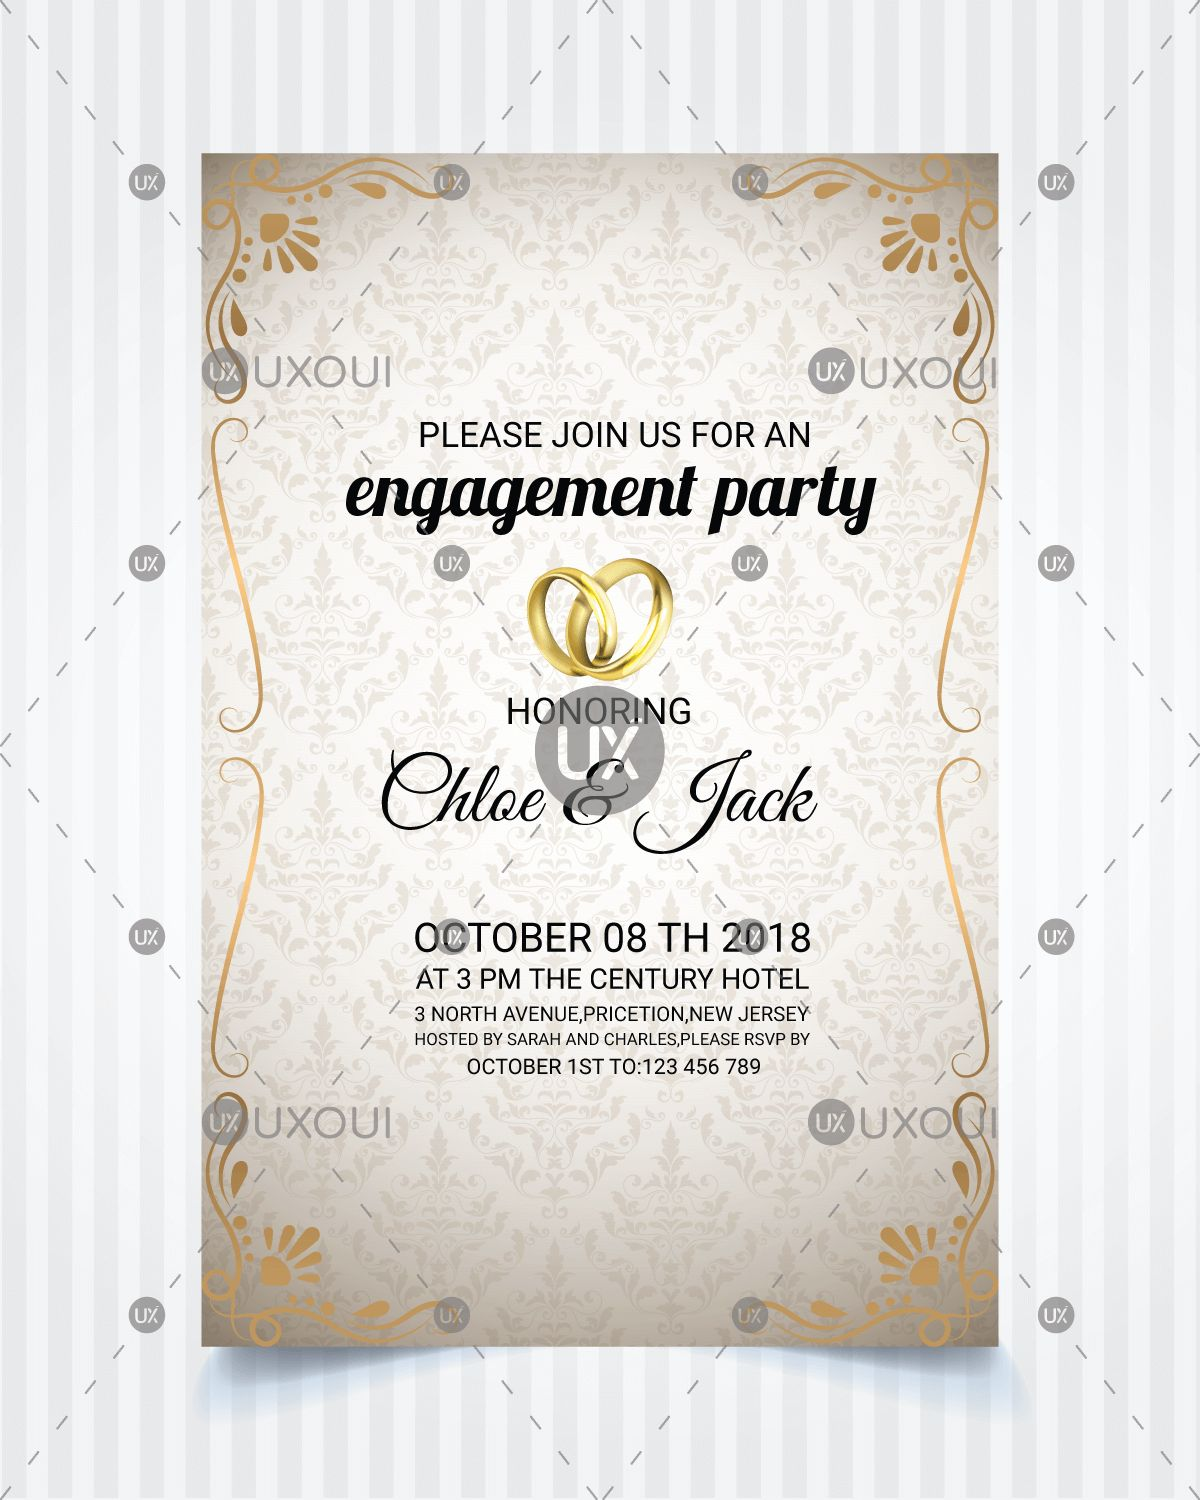 Vintage Style Wedding Engagement Party Invitation Card Template